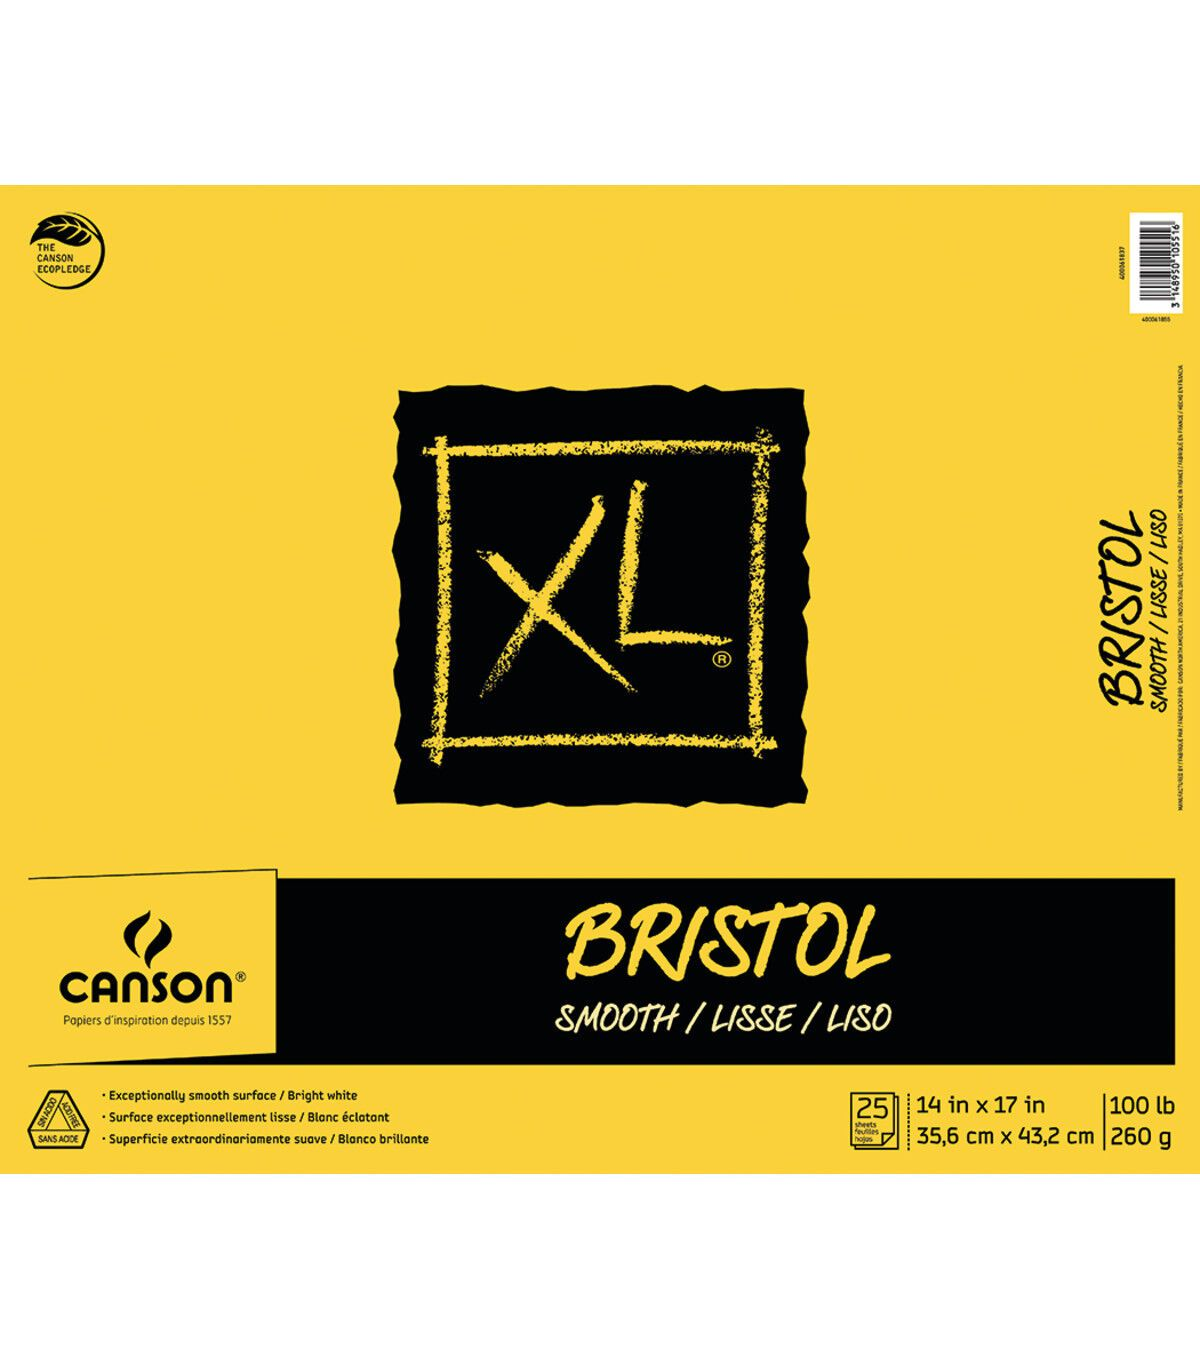 Canson Xl Series Mix Media Pad Canson Xl Bristol Smooth Pad In 2020 Bristol Mechanical Pencils